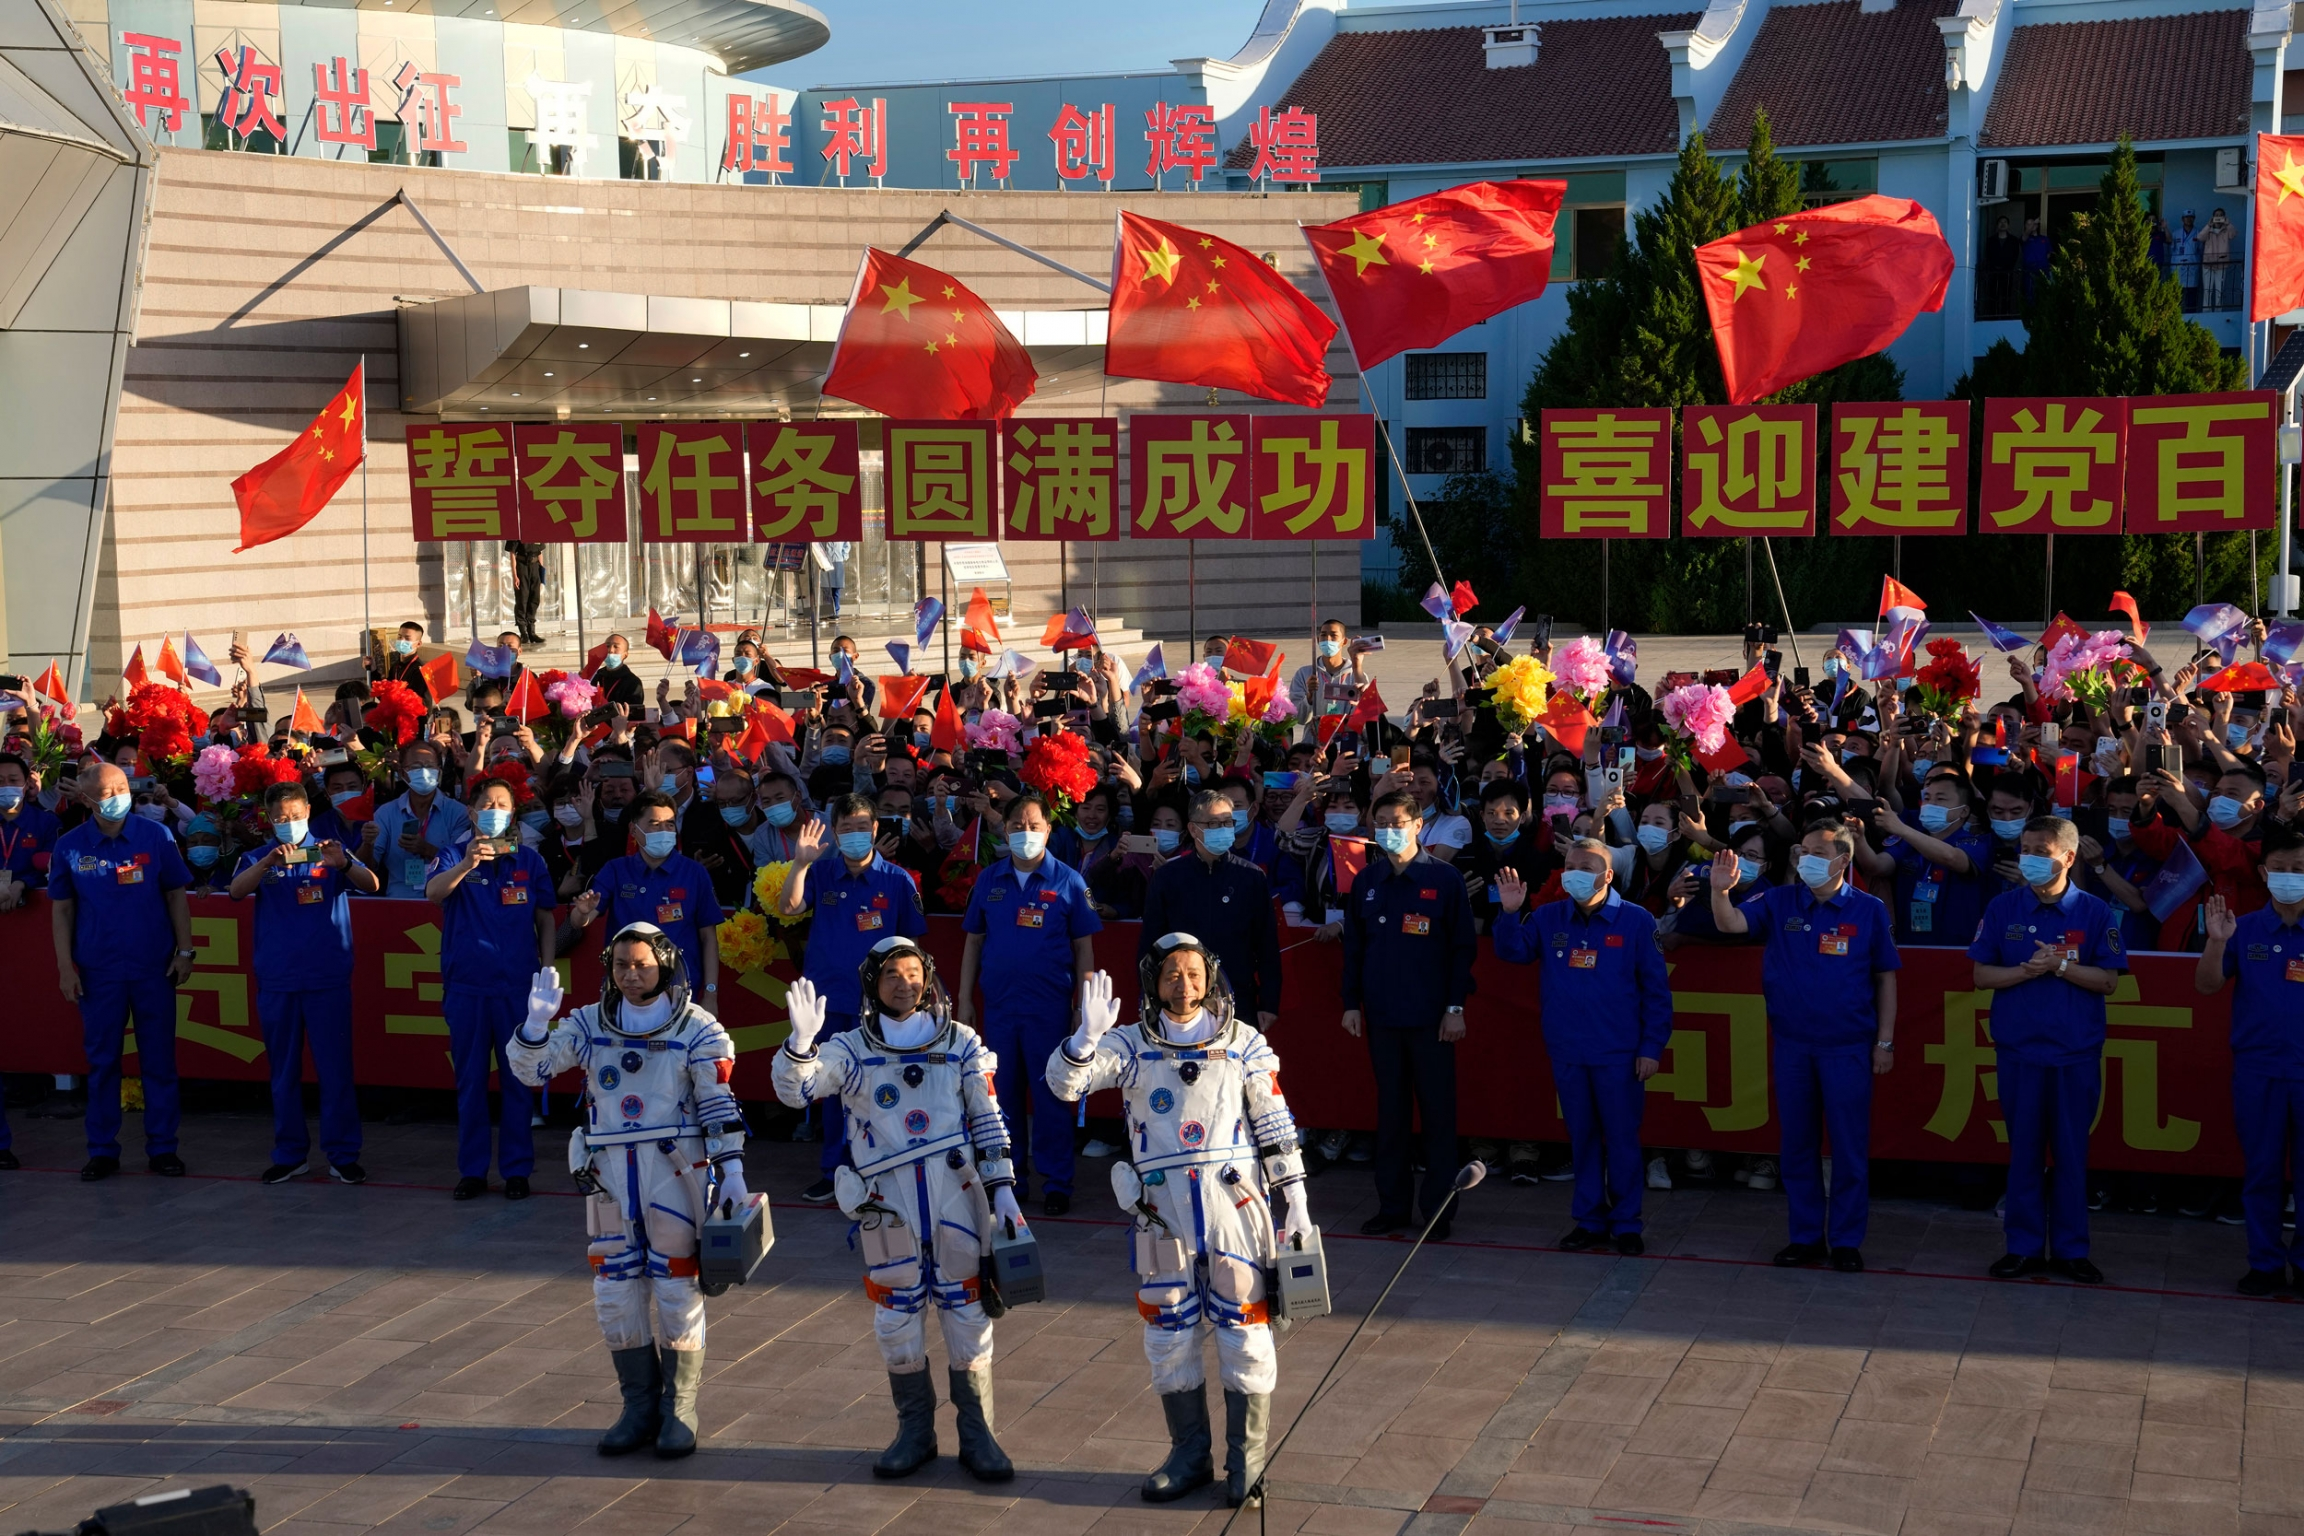 Three Chinese astronauts are shown waving with a large crowd of people waving the Chinese flag behind them.